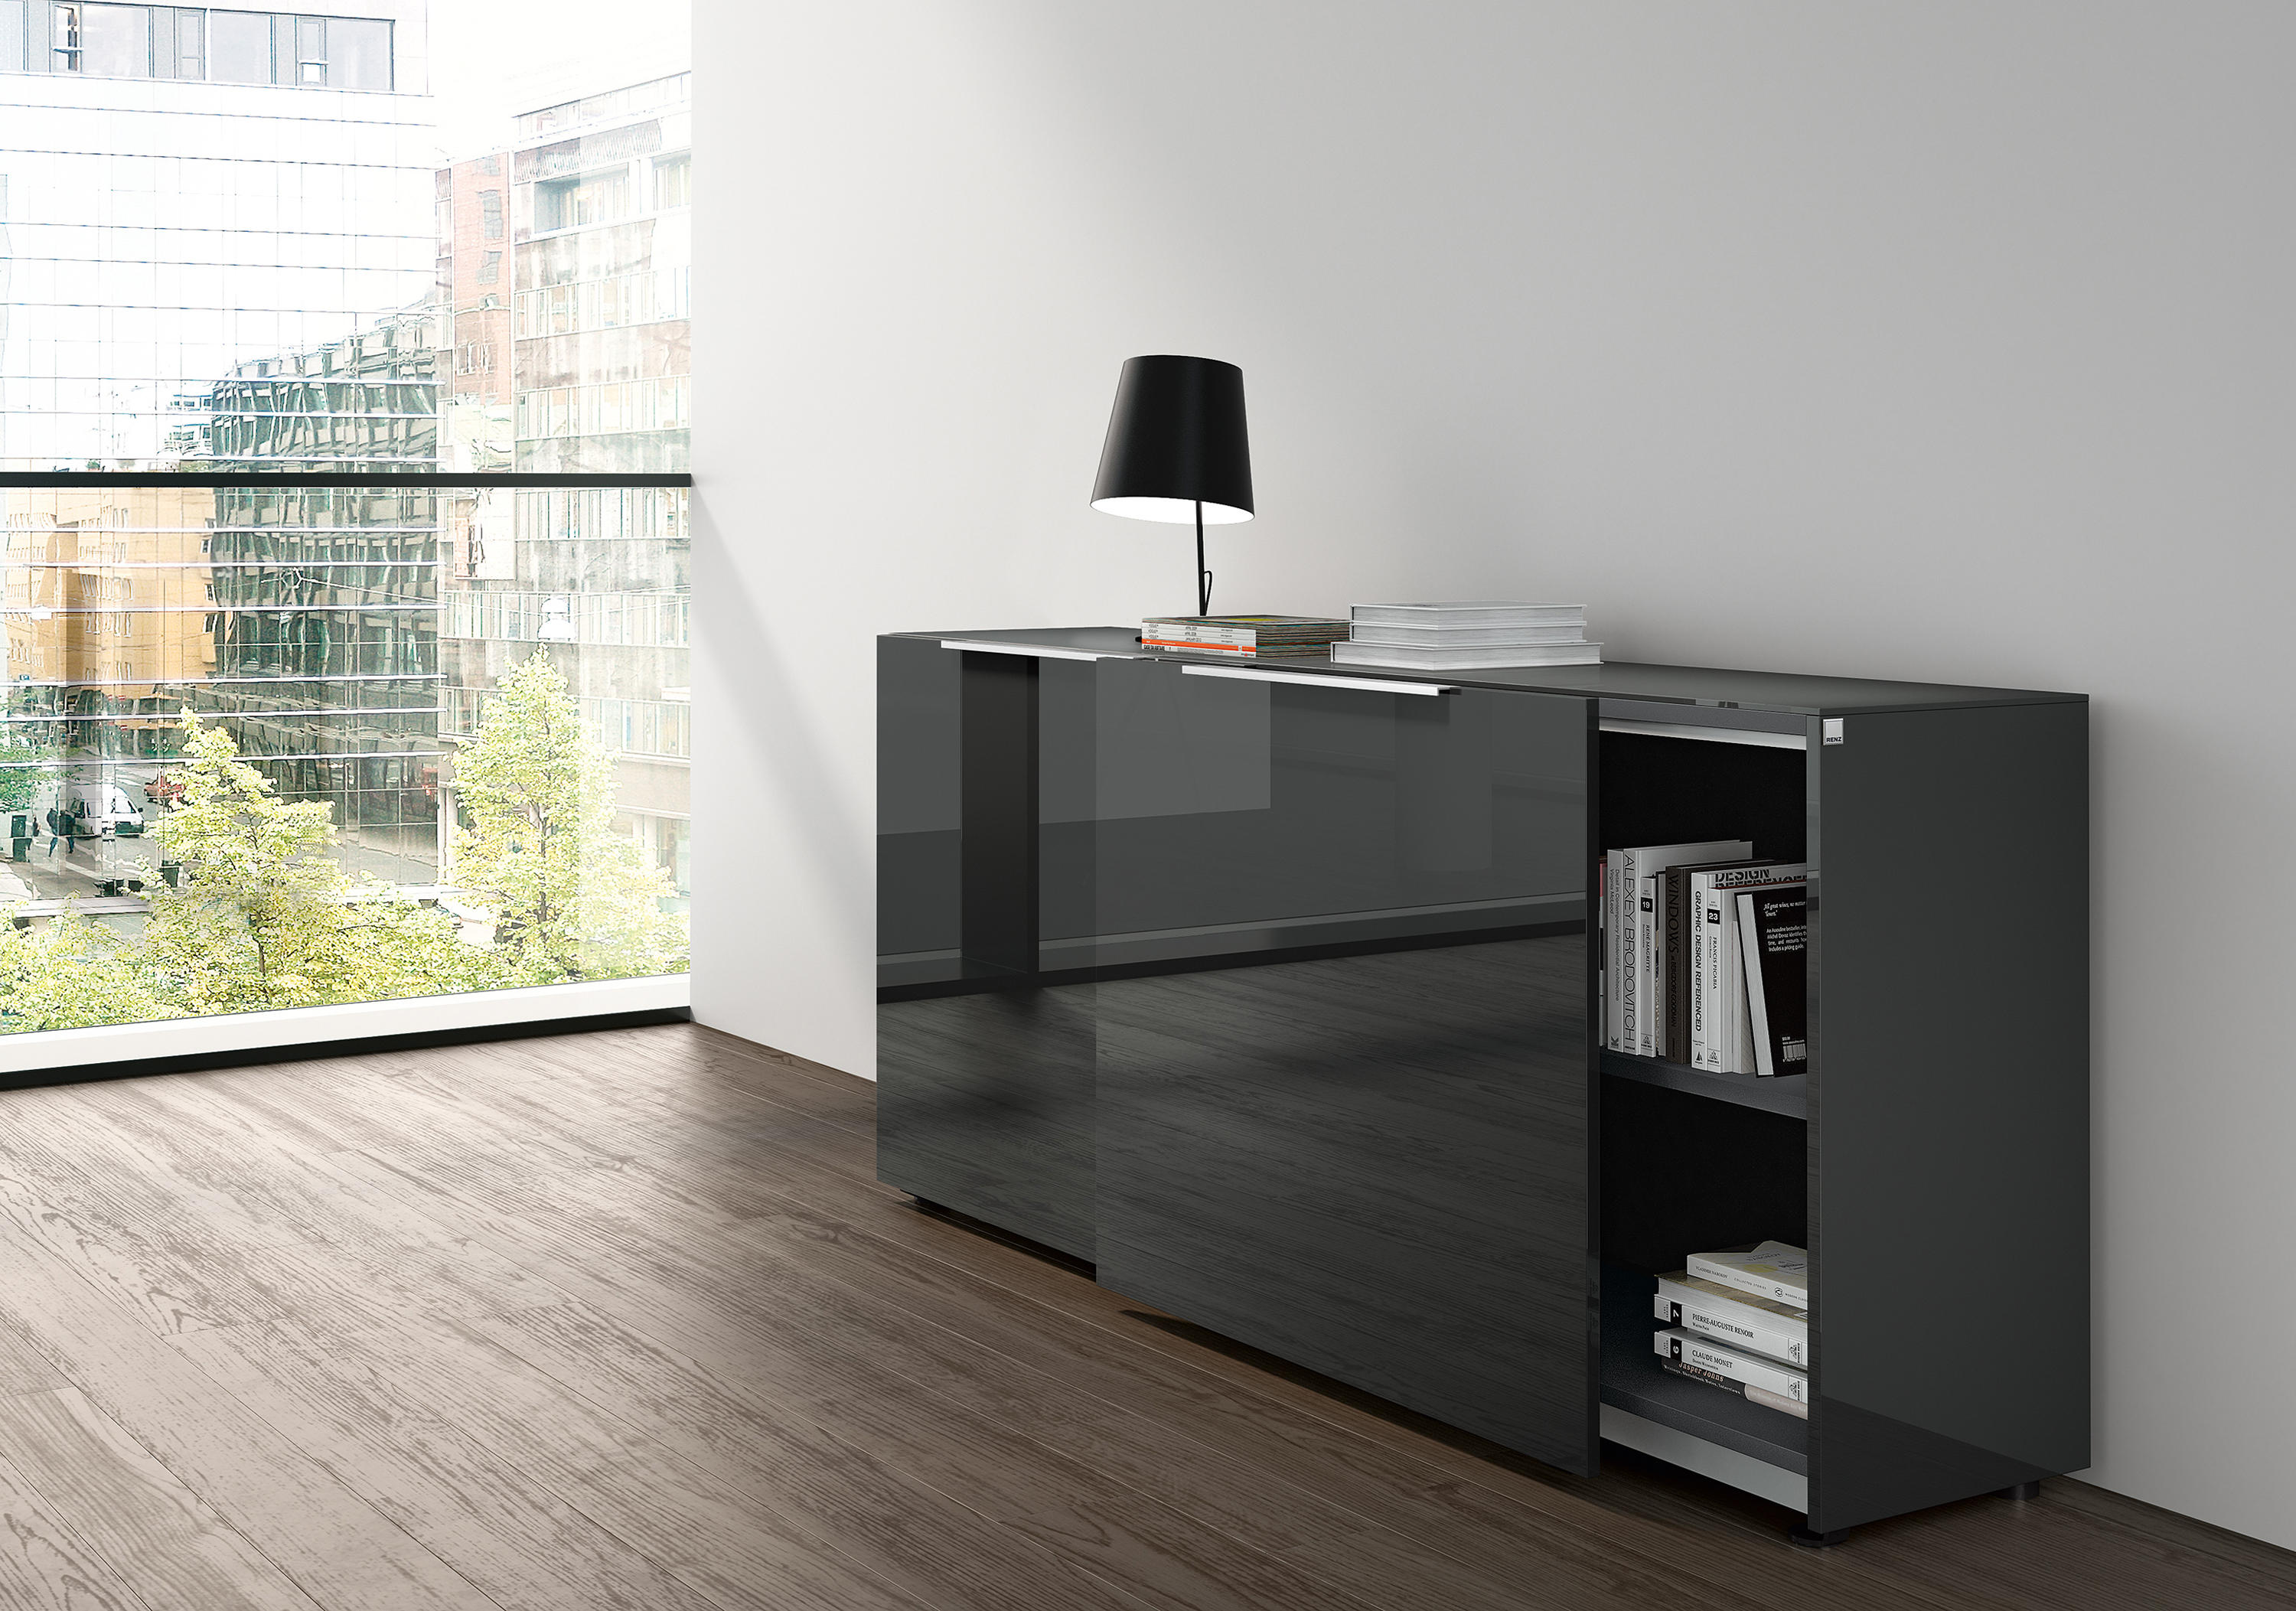 SITE SIDEBOARD - Sideboards from RENZ | Architonic